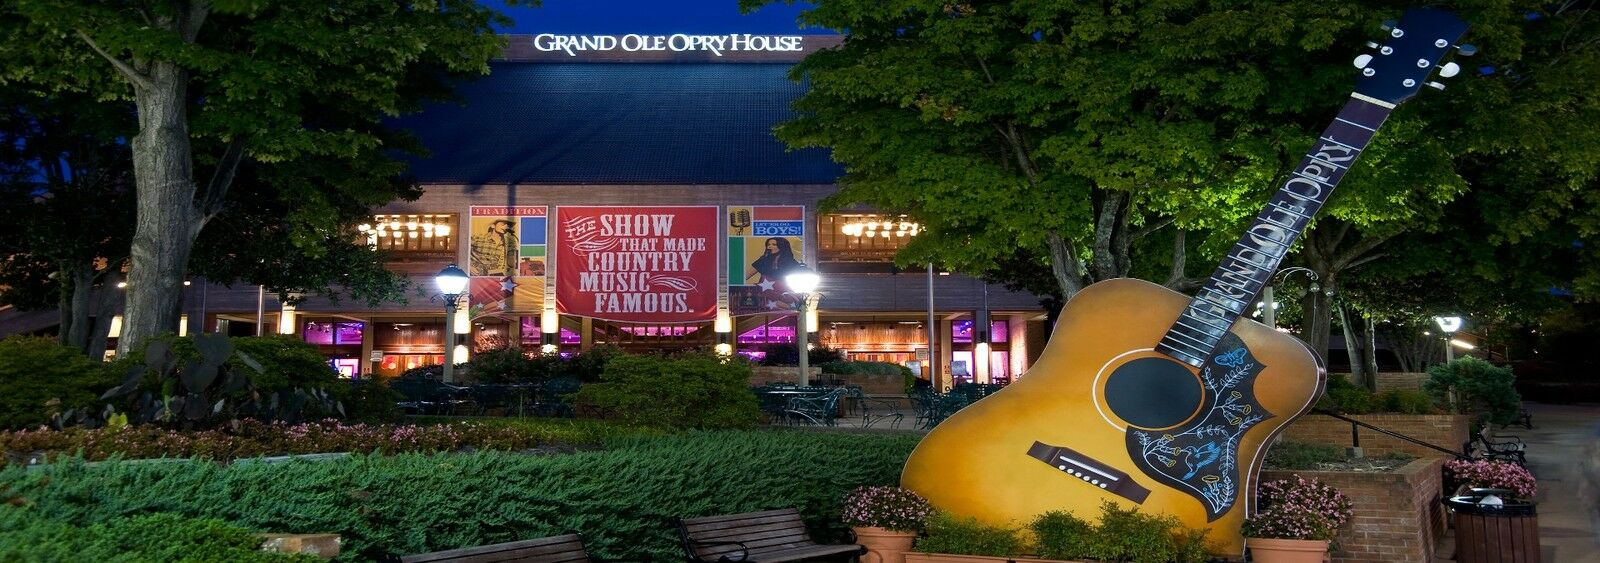 Grand Ole Opry with Charlie Worsham, The Secret Sisters, and more